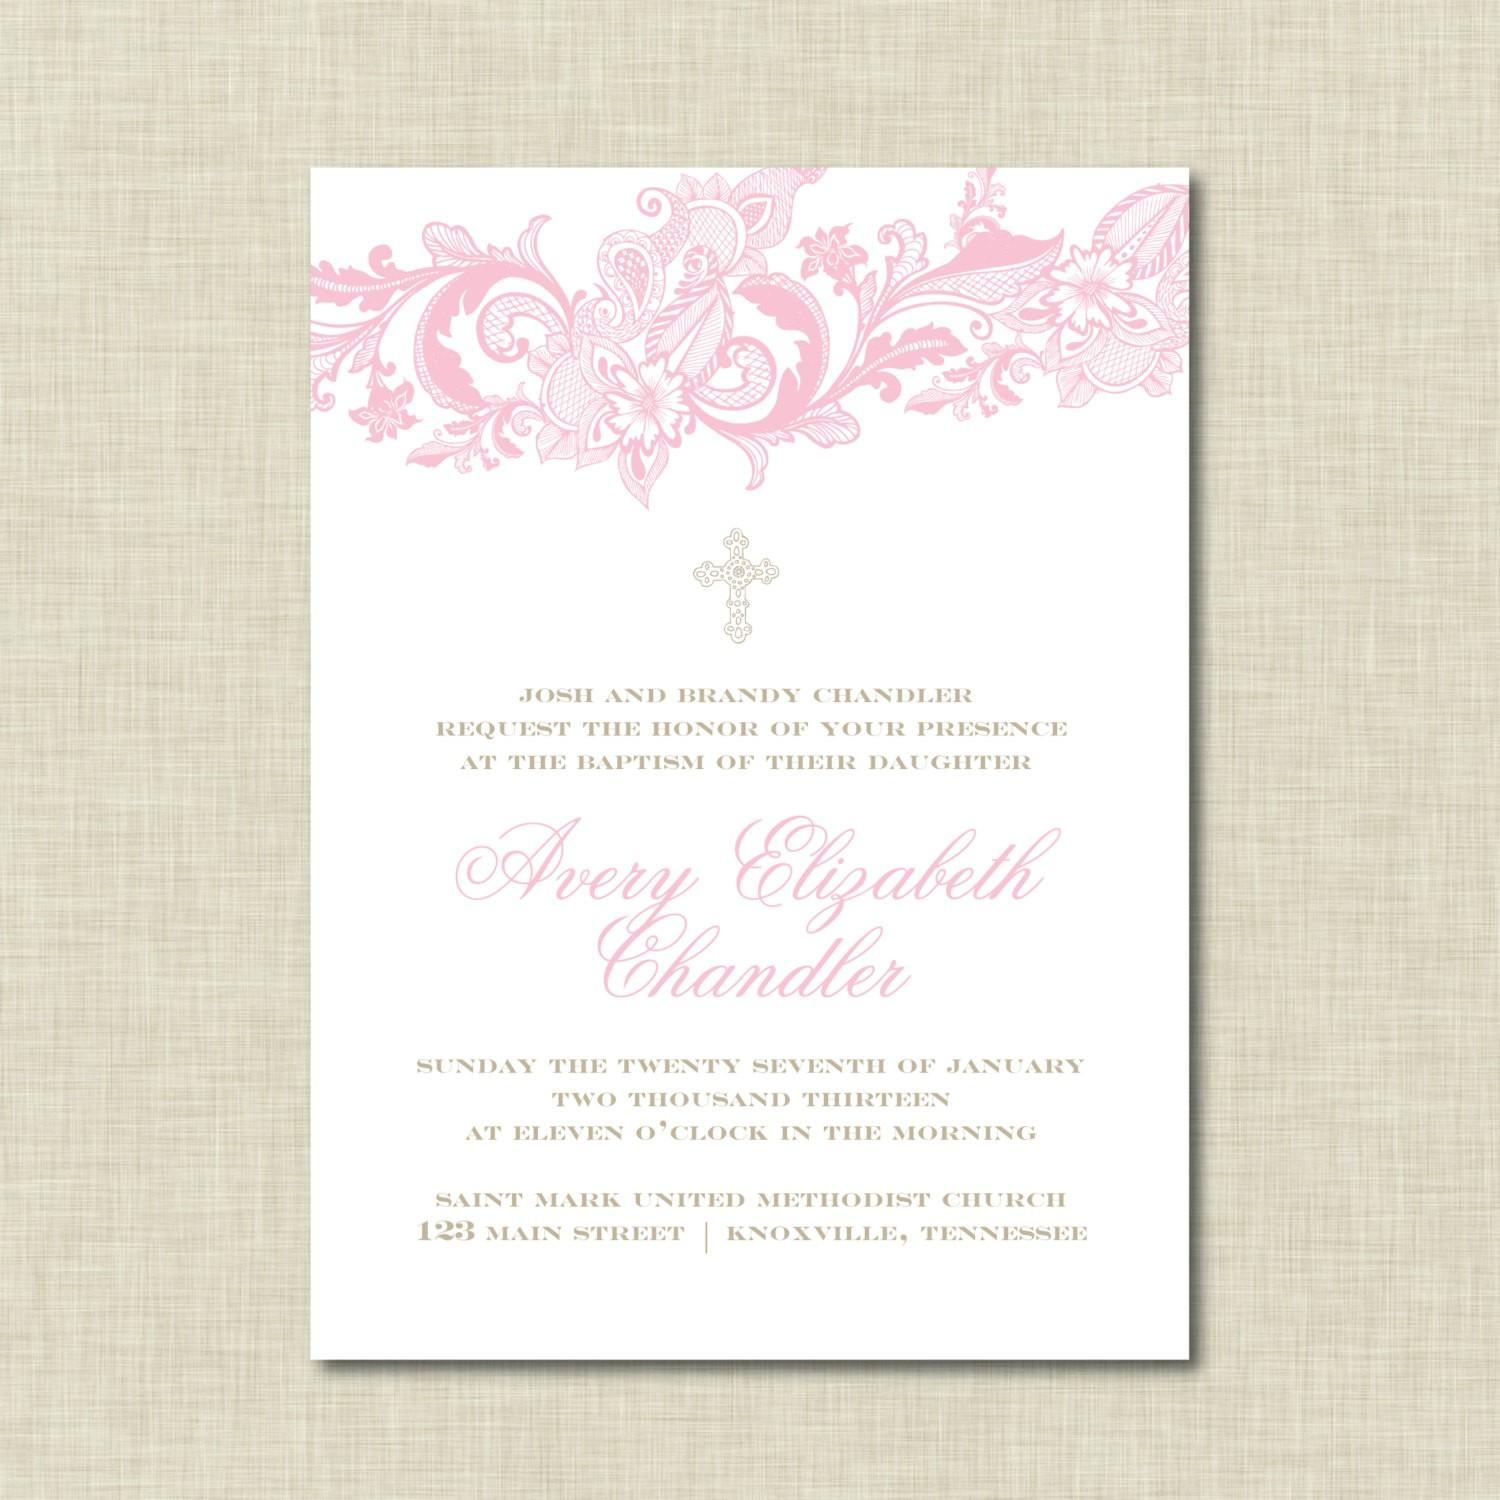 Free Printable Indian Wedding Invitations Templates Downloads